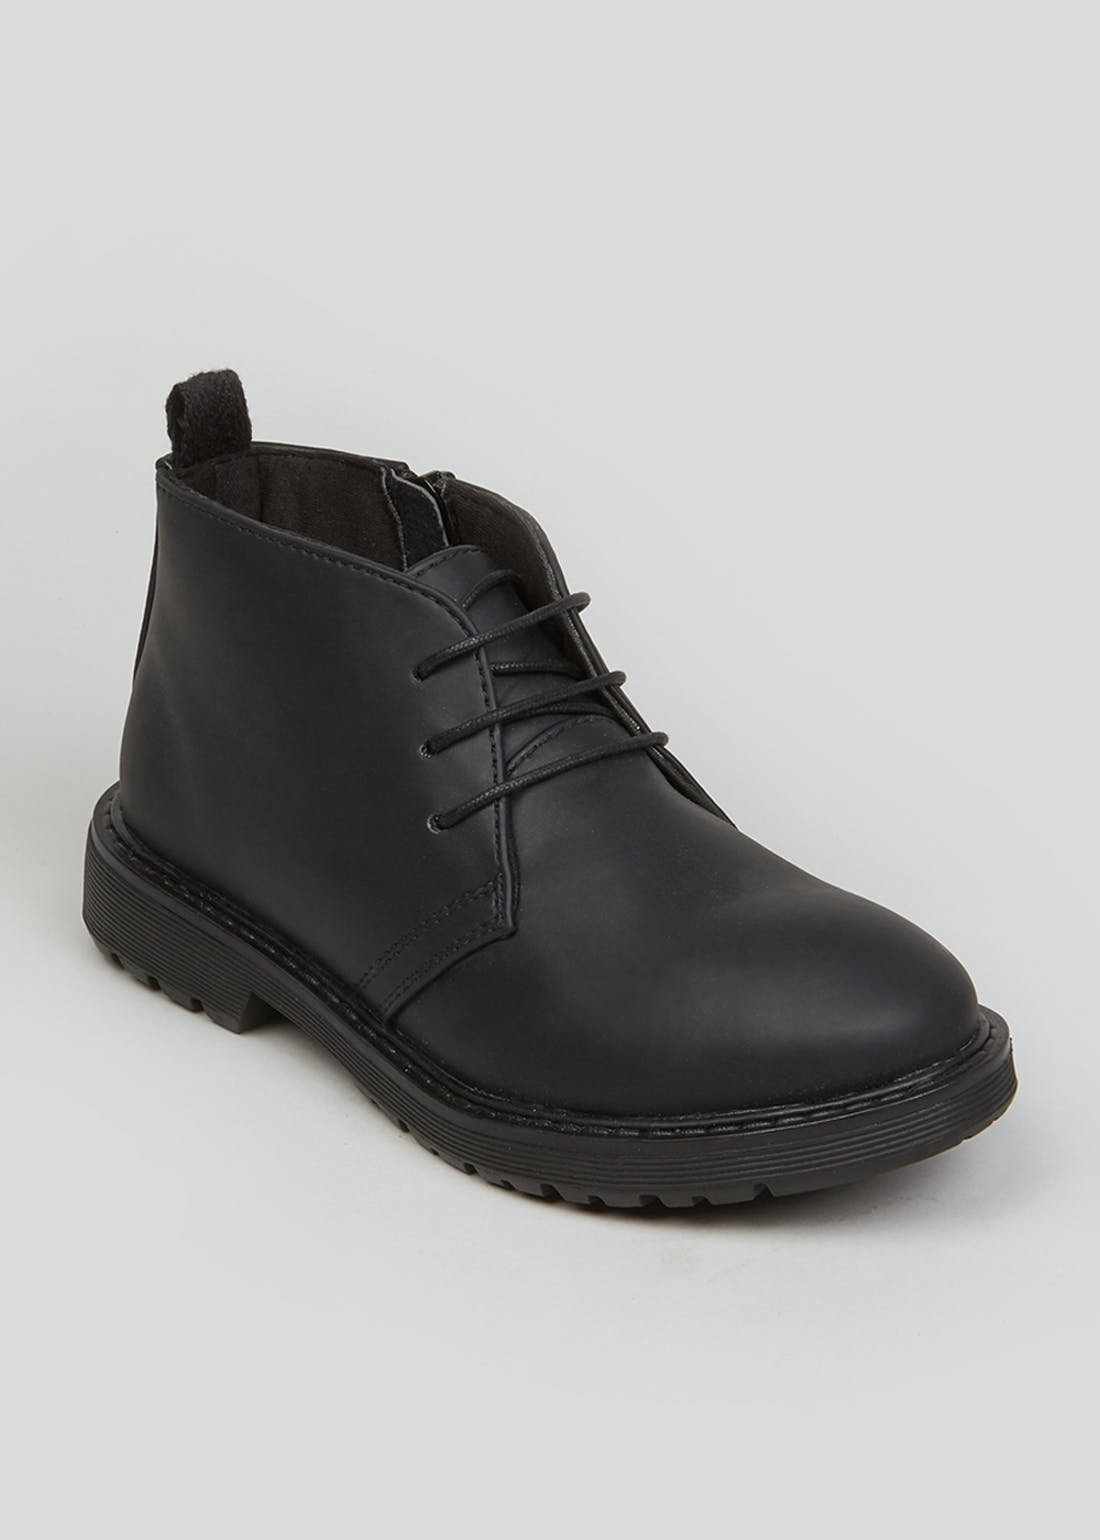 Boys Black Lace Up Ankle Boots (Younger 13-Older 5)